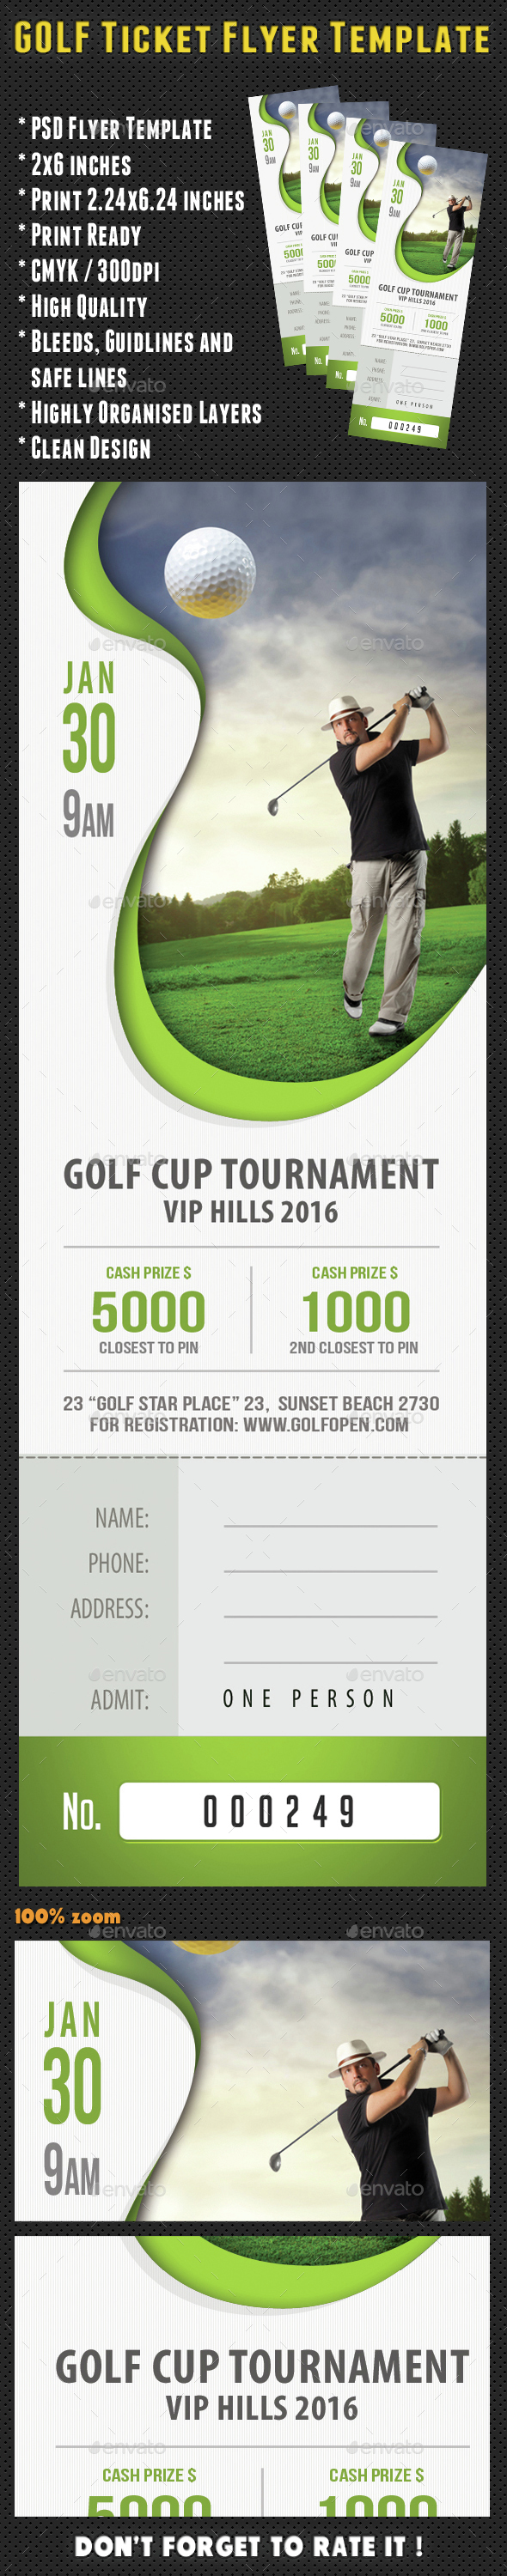 Golf Ticket Template 05 - Sports Events